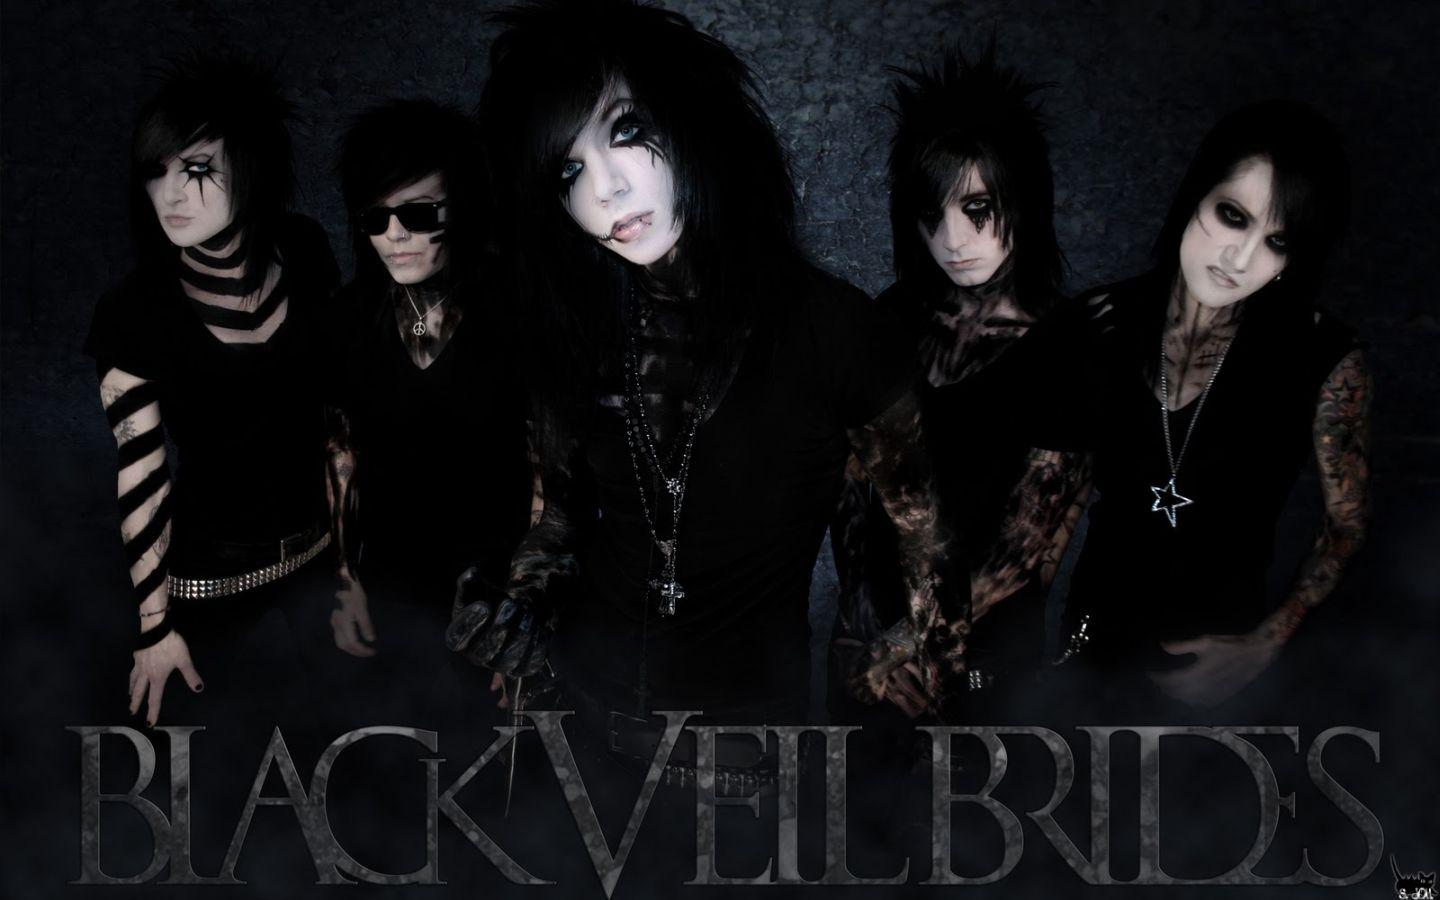 Black Veil Brides Backgrounds 1440x900